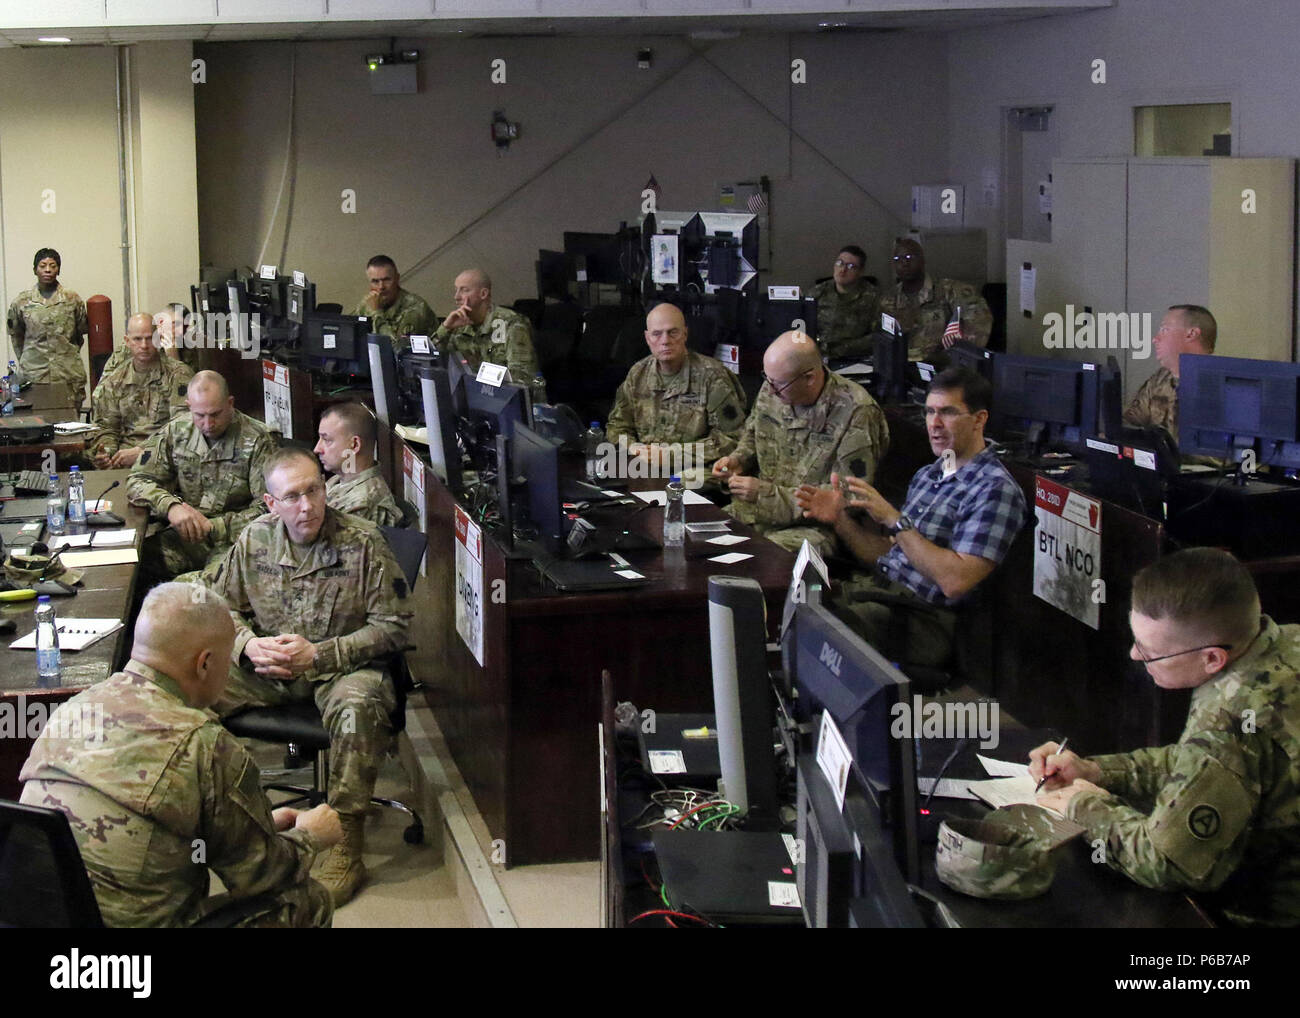 Army Prepositioned Stock Stock Photos & Army Prepositioned Stock